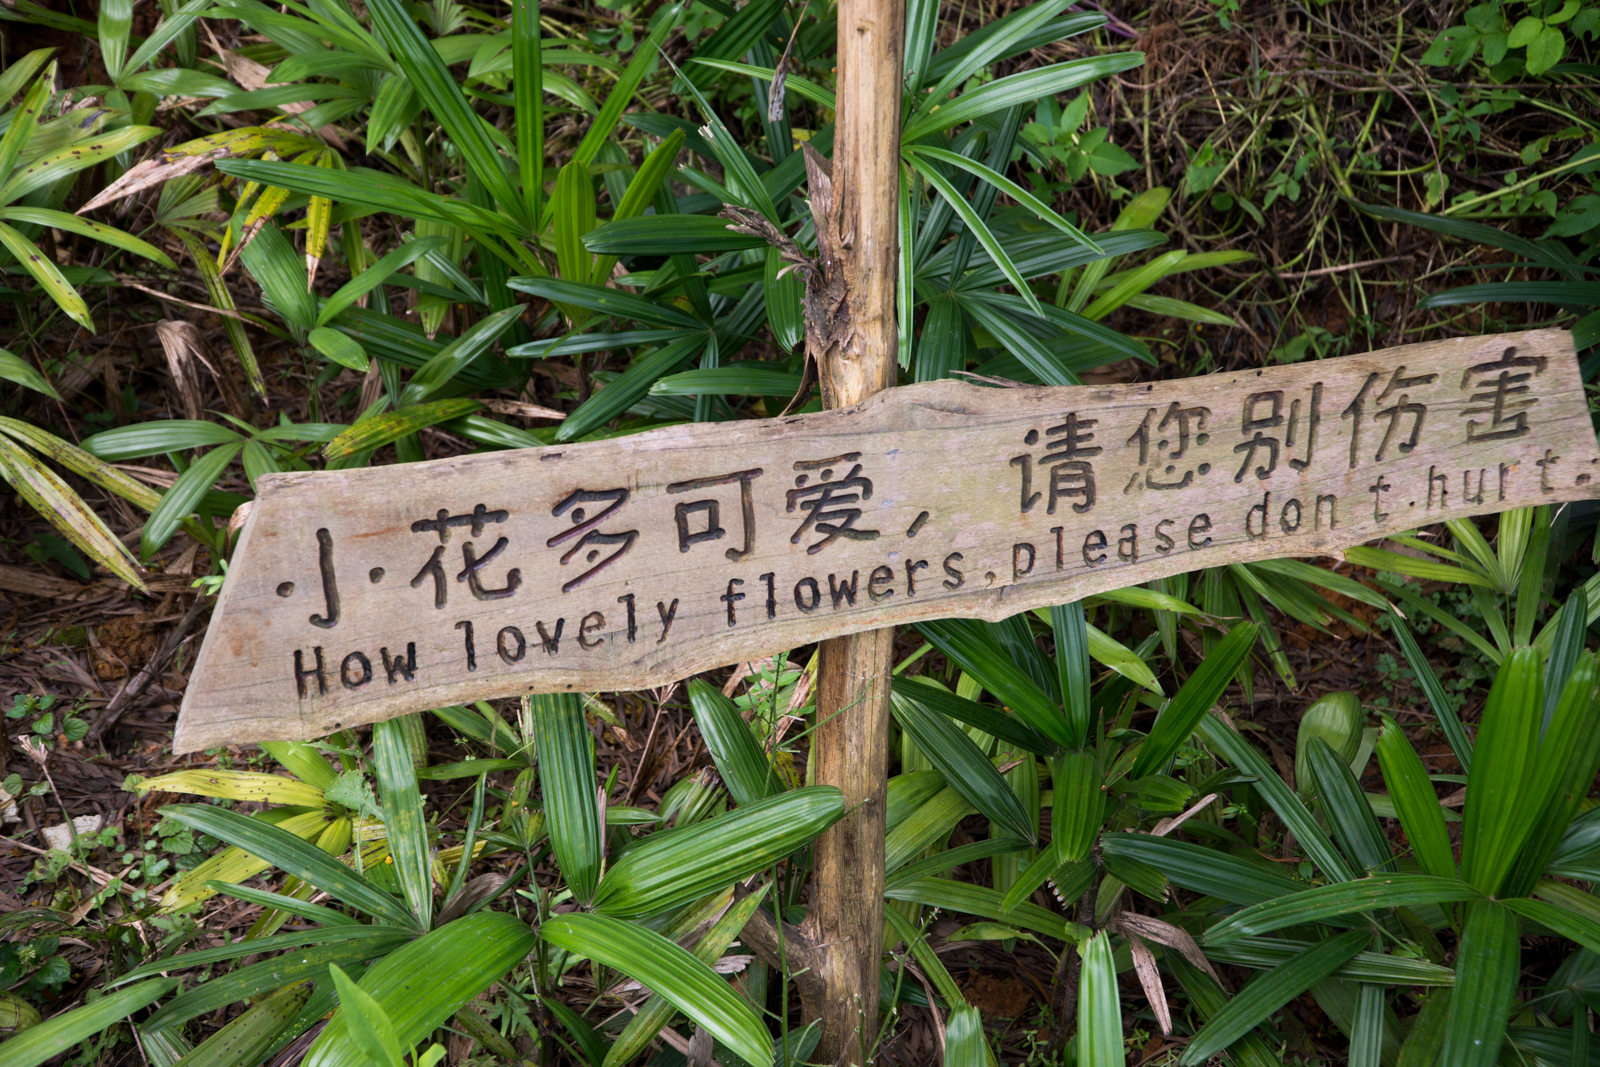 Sign Chinese Bad Translation